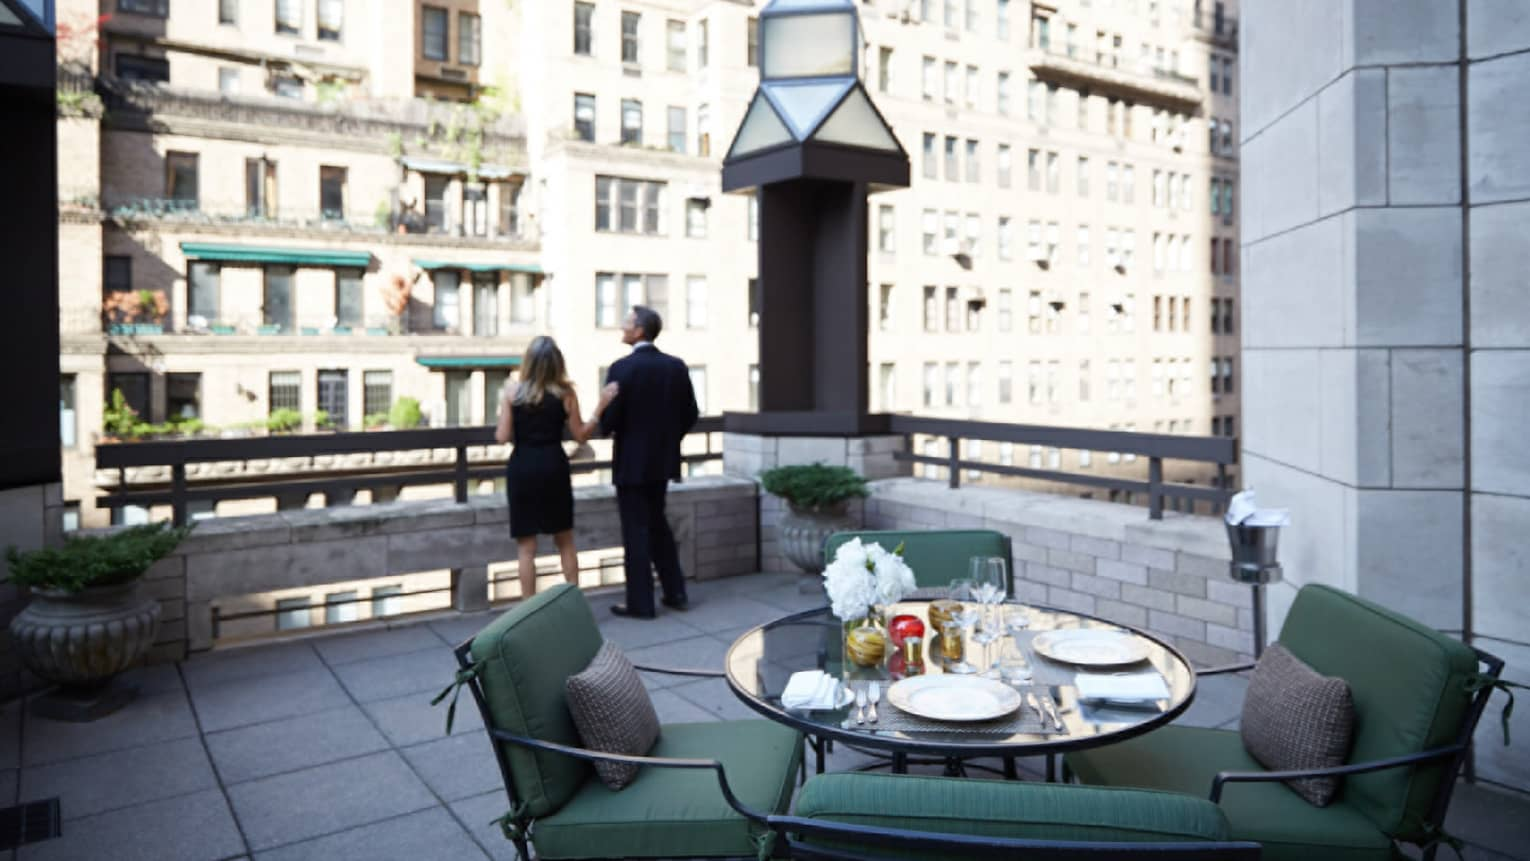 Man and woman in business suits look out from rooftop patio with table, plush chairs